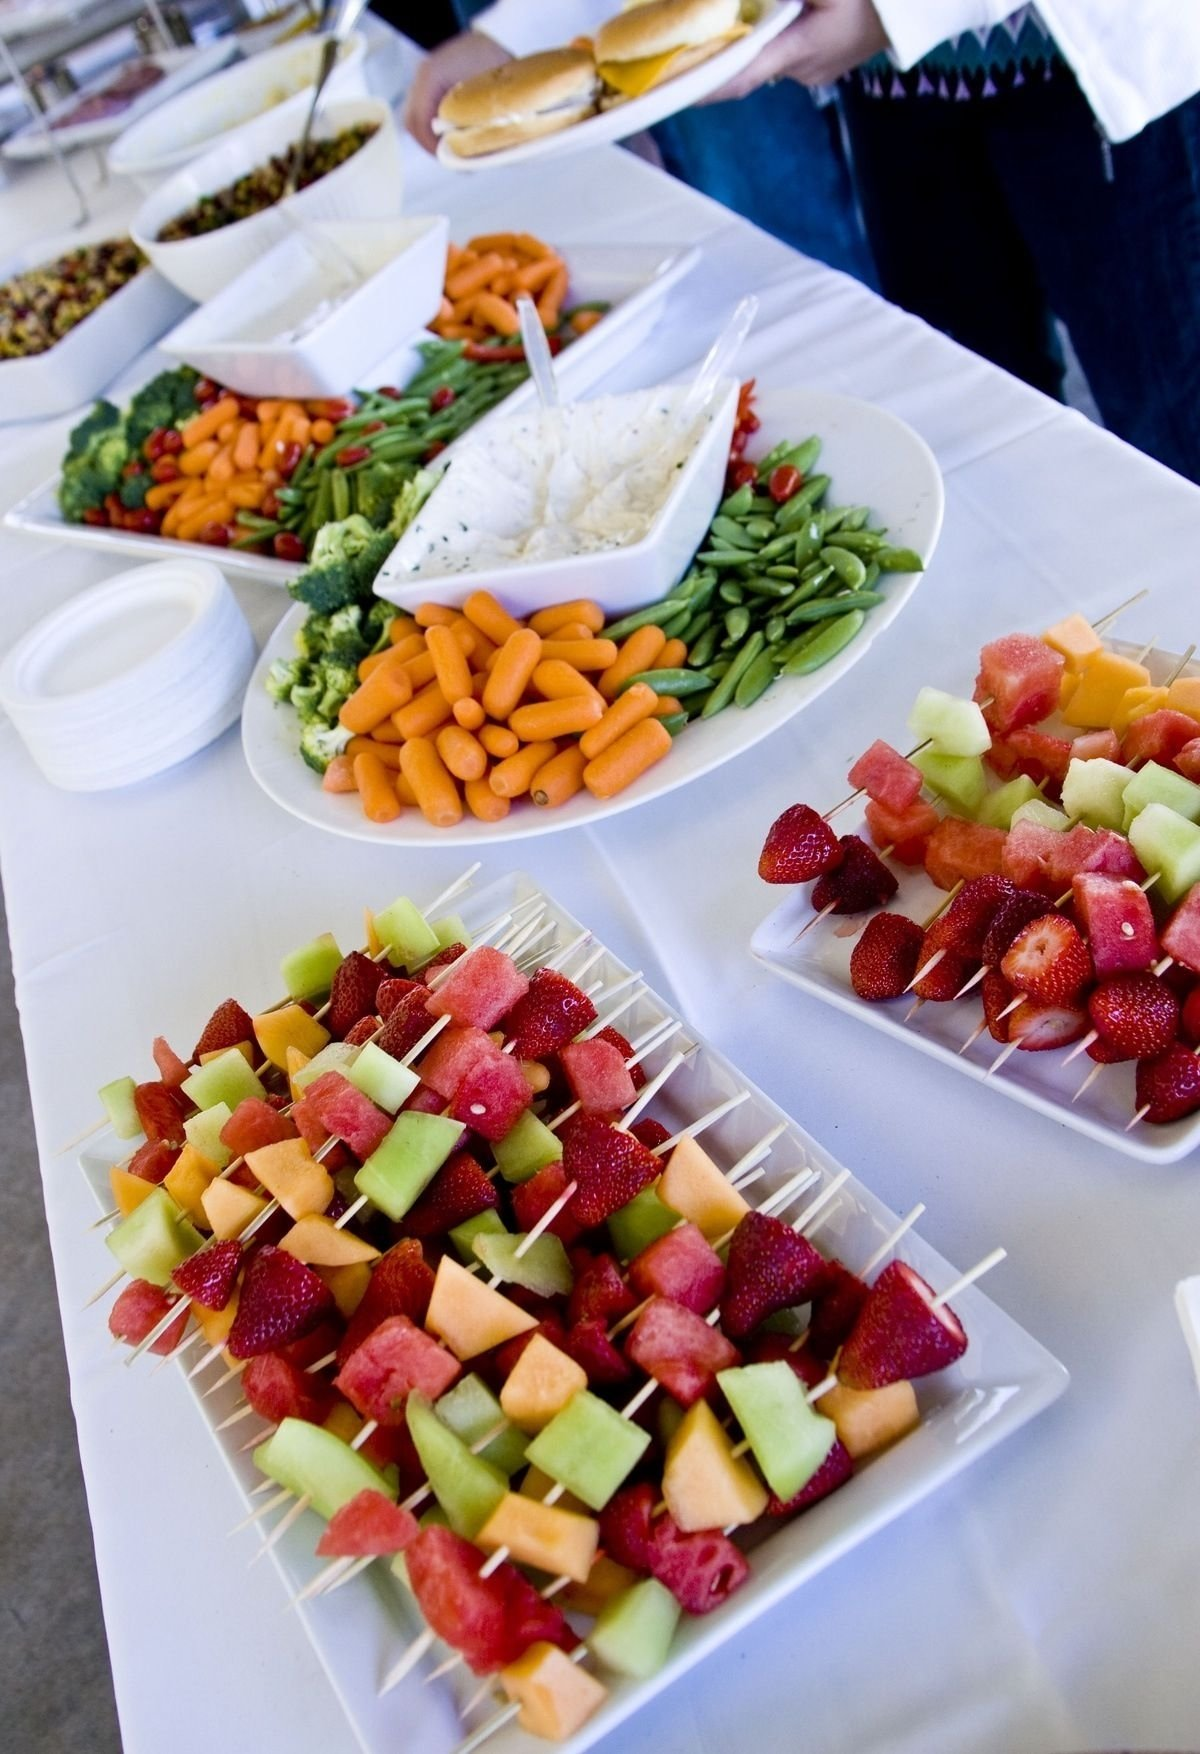 10 Fantastic Wedding Reception Food Menu Ideas veggie trays like this and fruit kabobs for the wedding with 1 2021